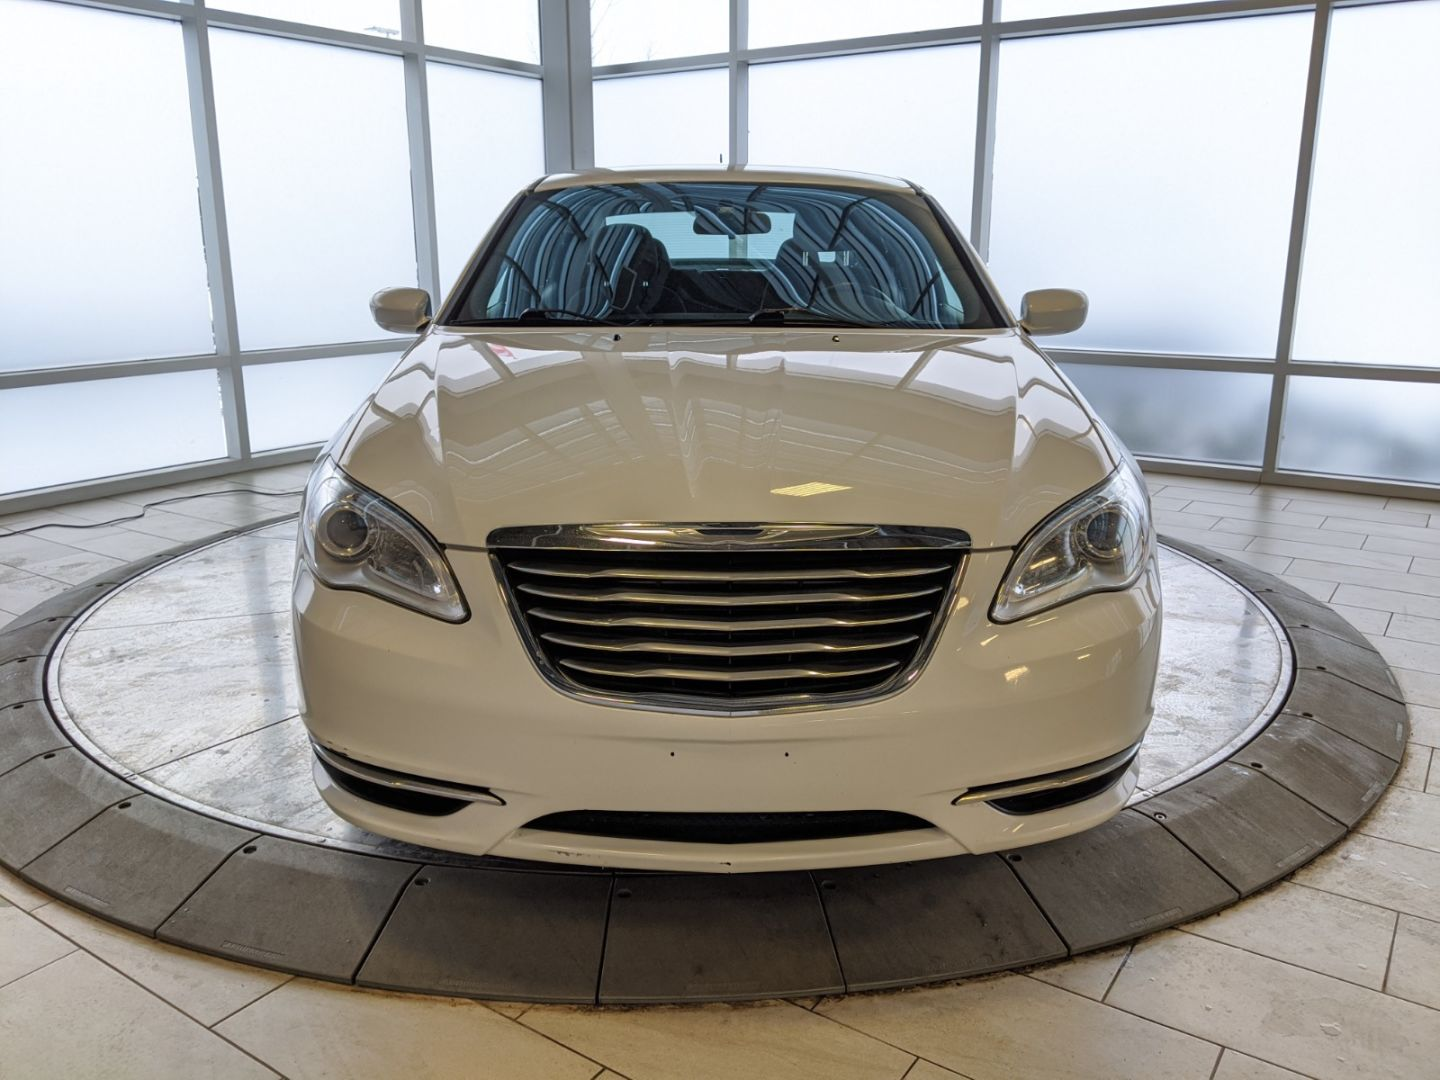 2014 Chrysler 200 LX for sale in Edmonton, Alberta